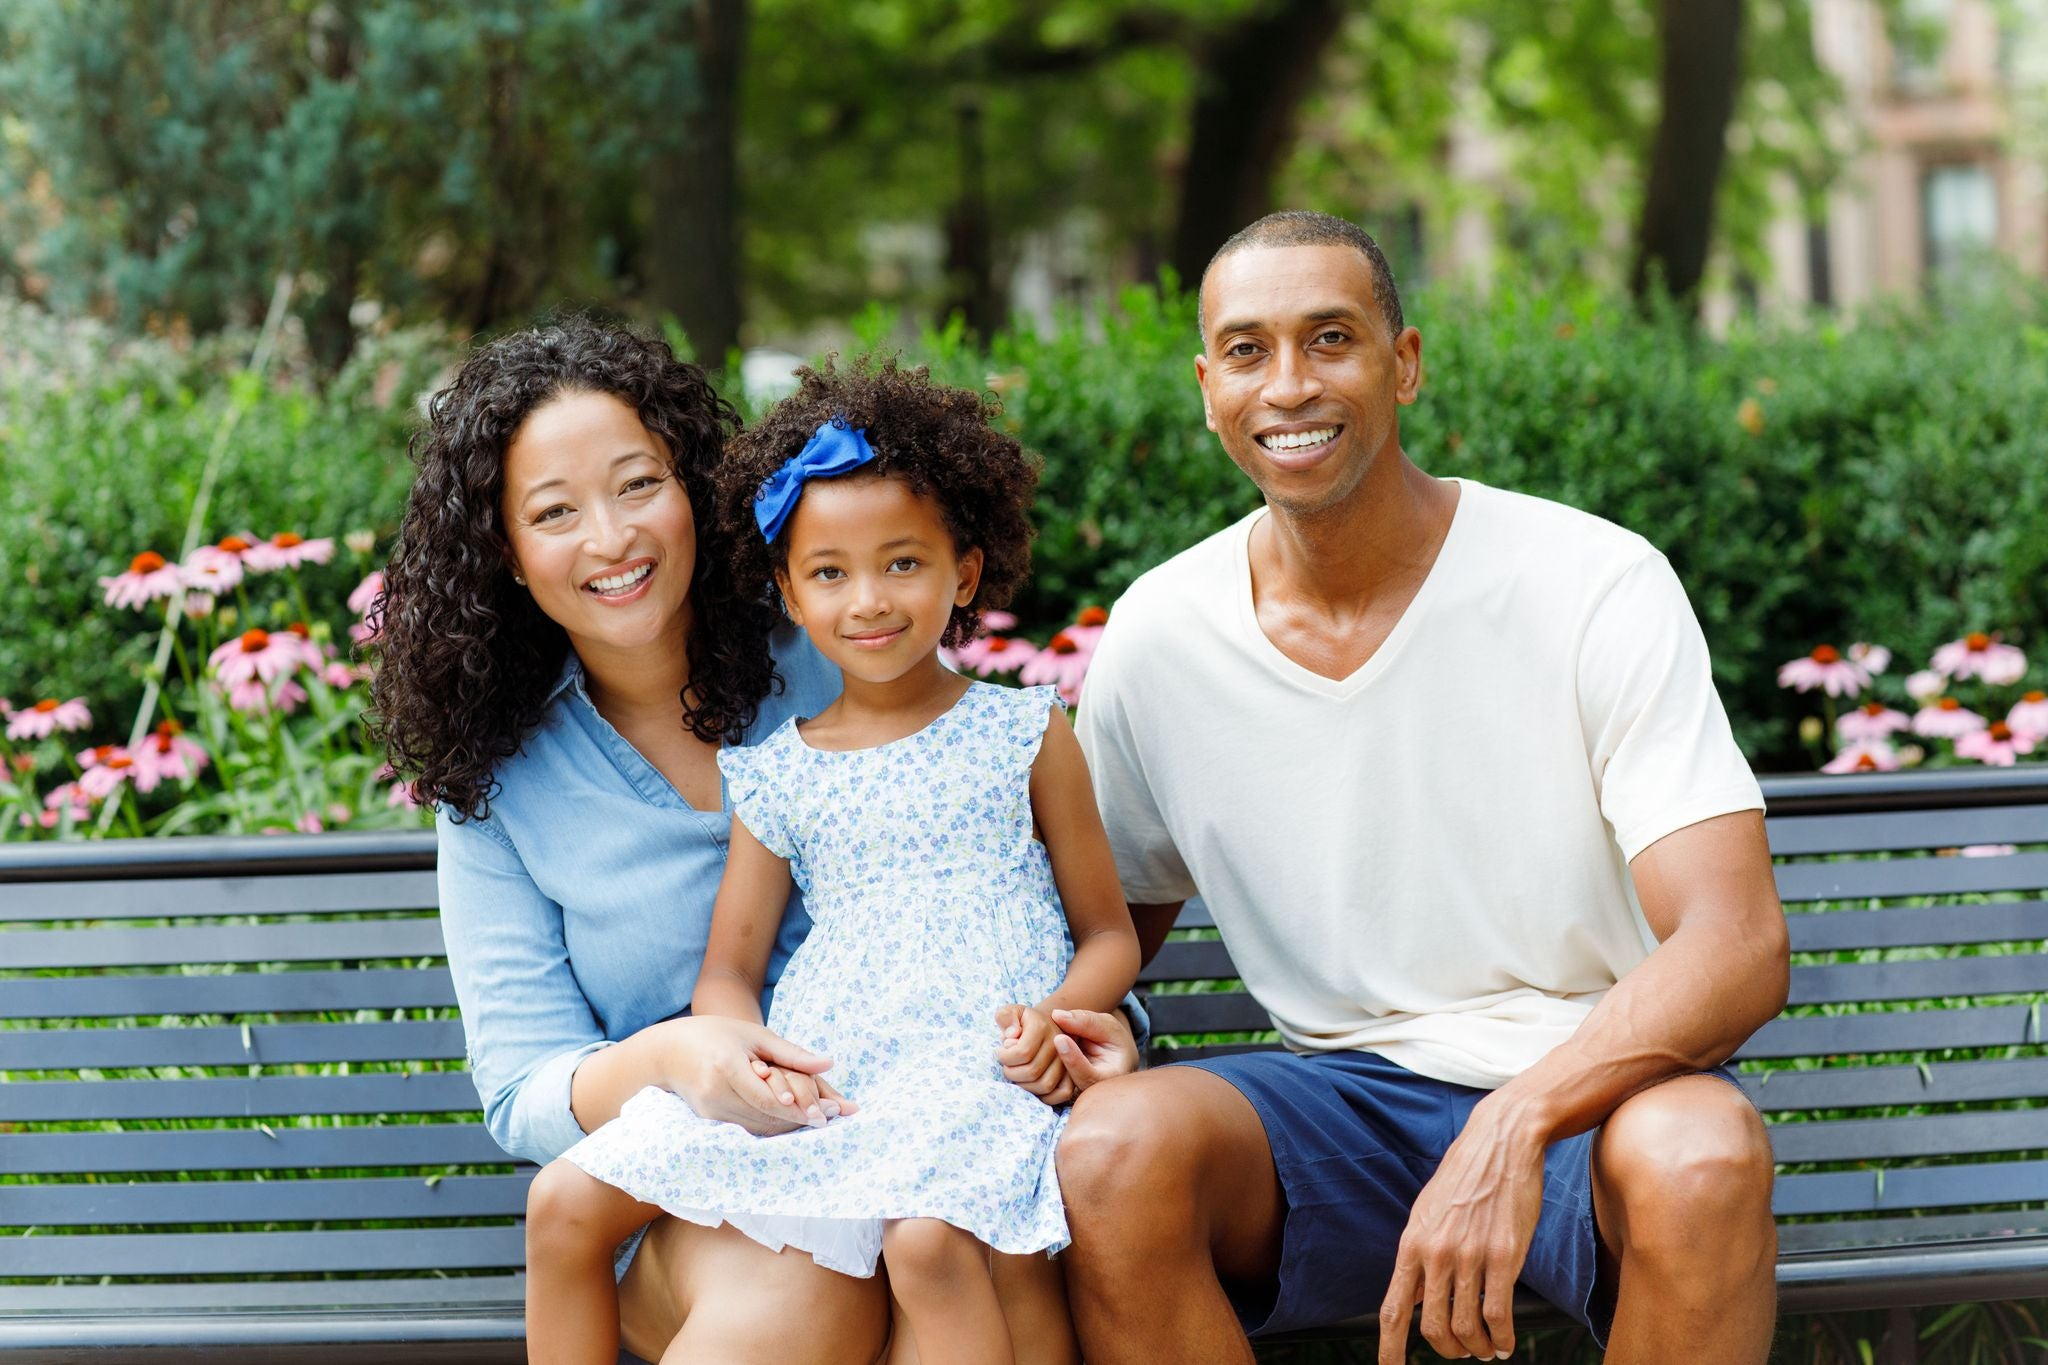 Denise Woodard and husband Jeremy with daughter Vivian sitting on a park bench backdropped by trees and flowers.